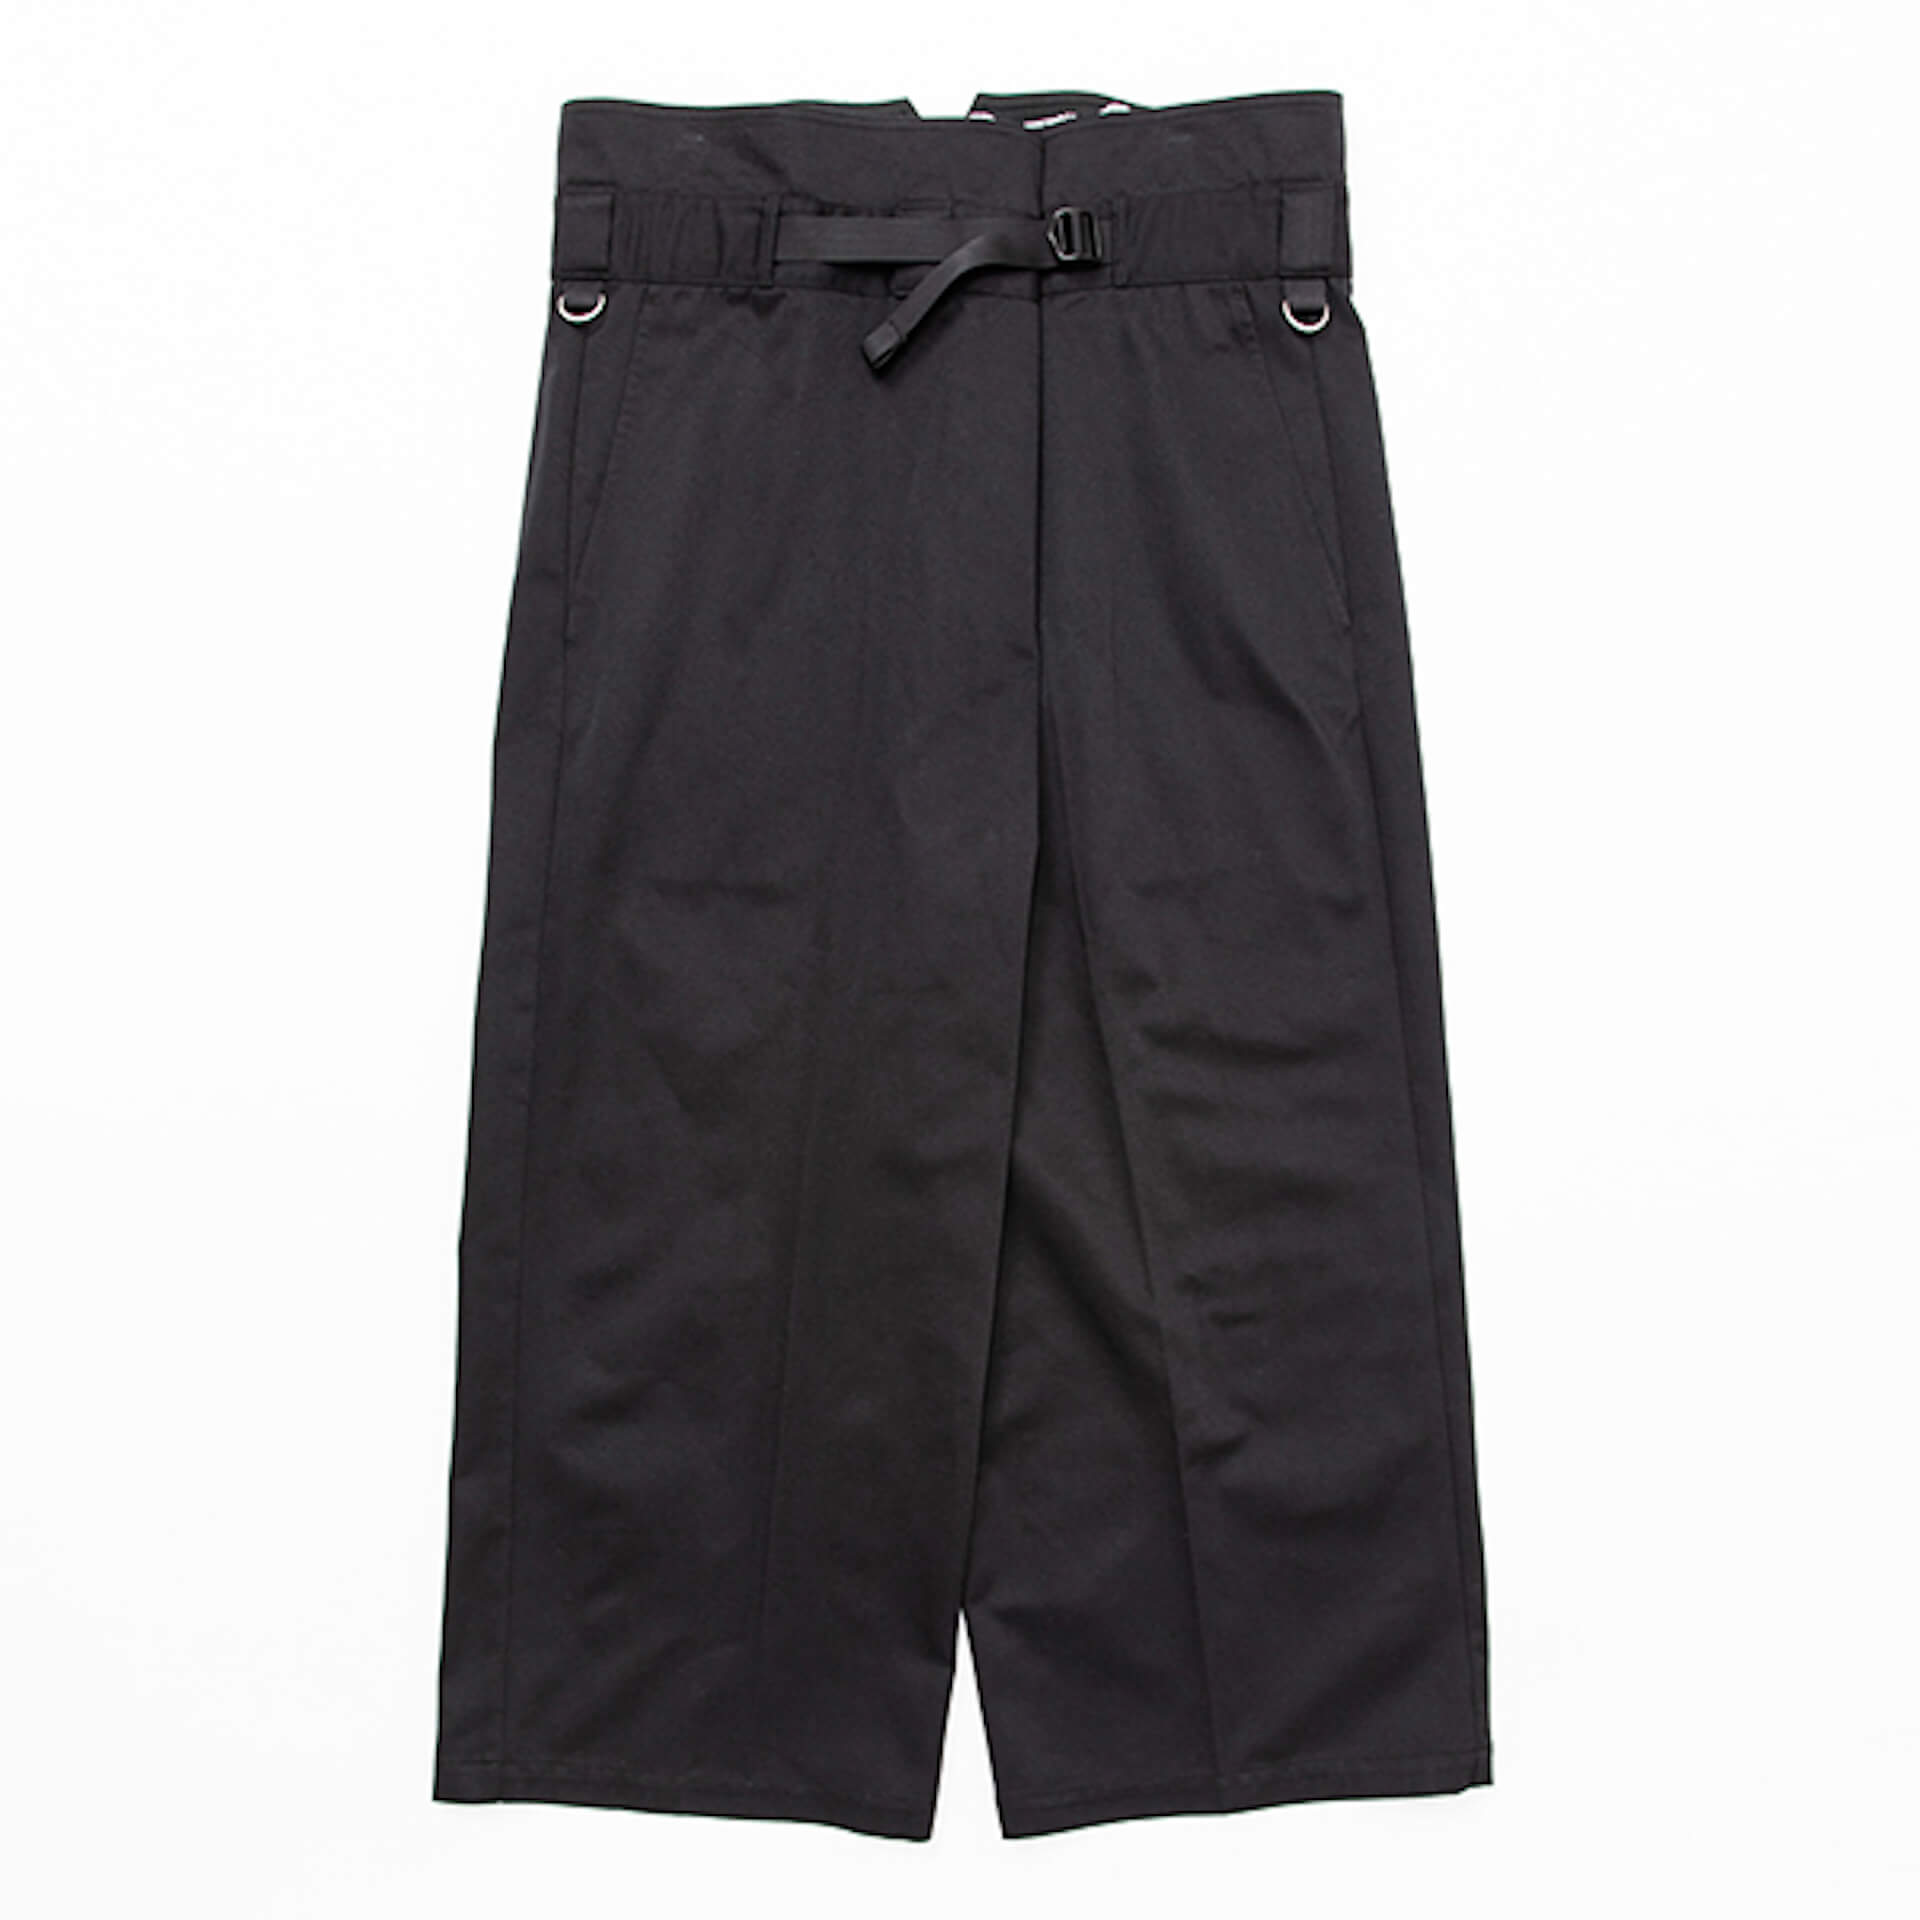 meanswhileとDickiesコラボ第2弾!定番素材を使用したセットアップが登場 lifefashion210901_meanswhile_10